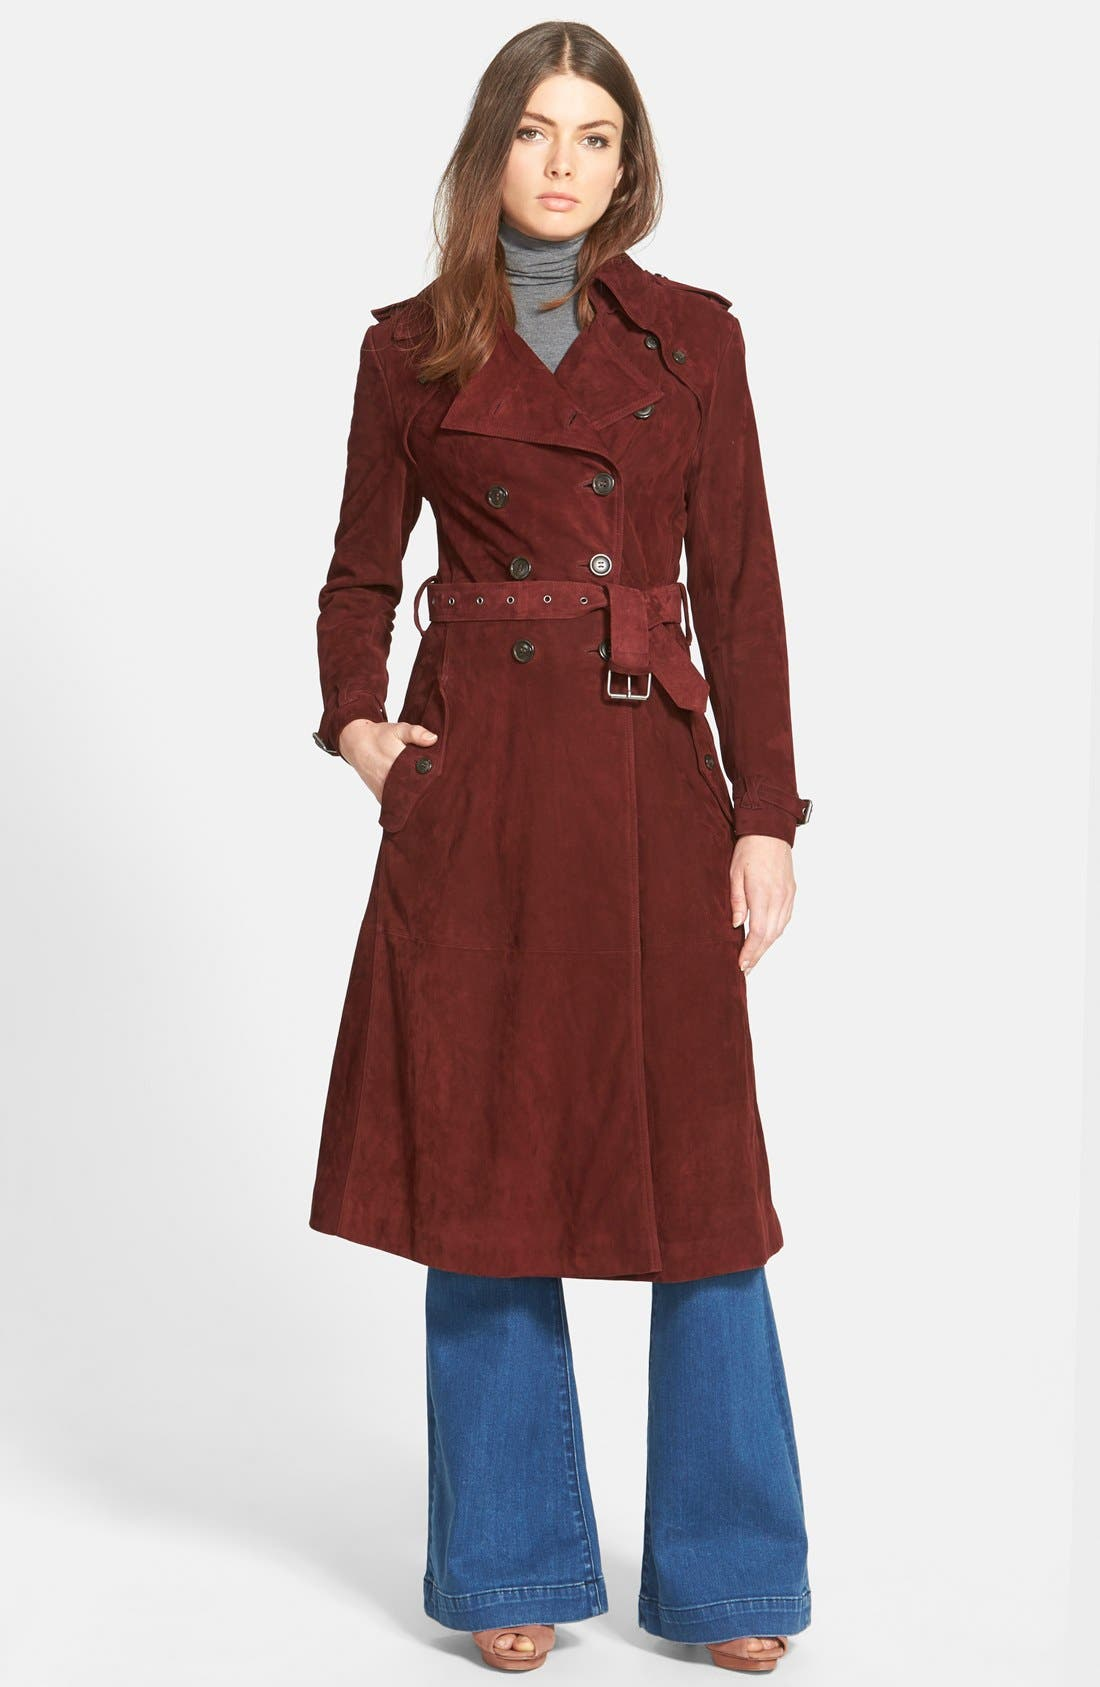 RebeccaMinkoff'Amis' SuedeTrench Coat,                             Main thumbnail 1, color,                             930